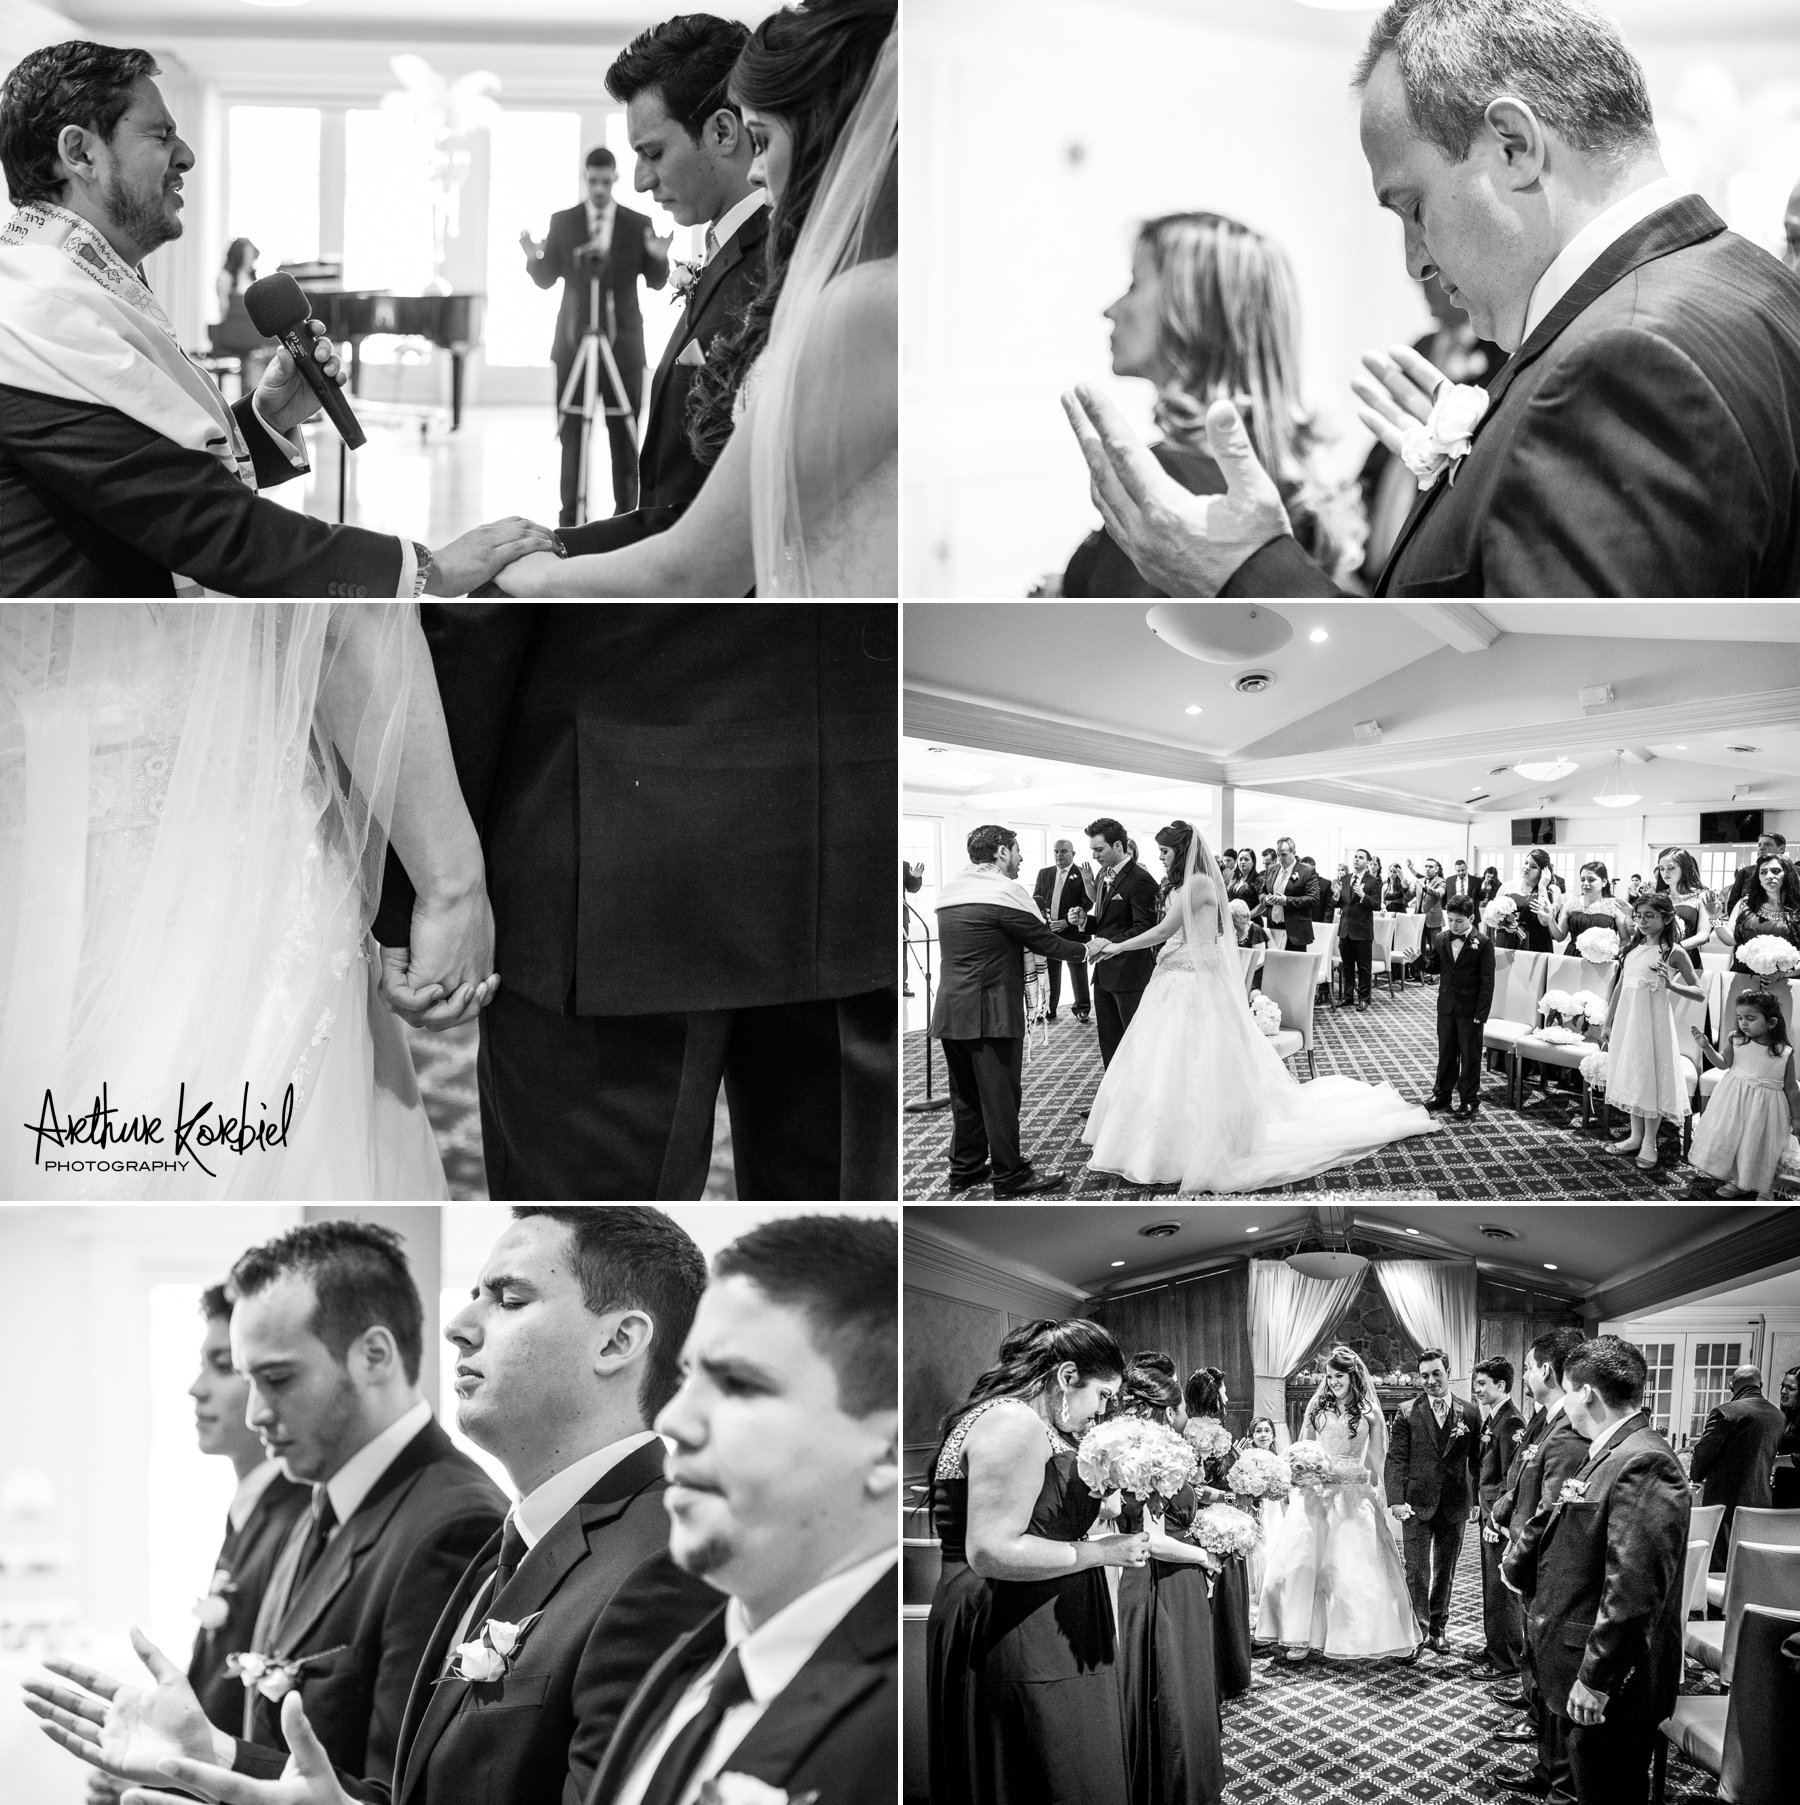 Arthur Korbiel Photography - London Wedding Photography by London Wedding Photographer - Highland Golf and Country Club_011.jpg